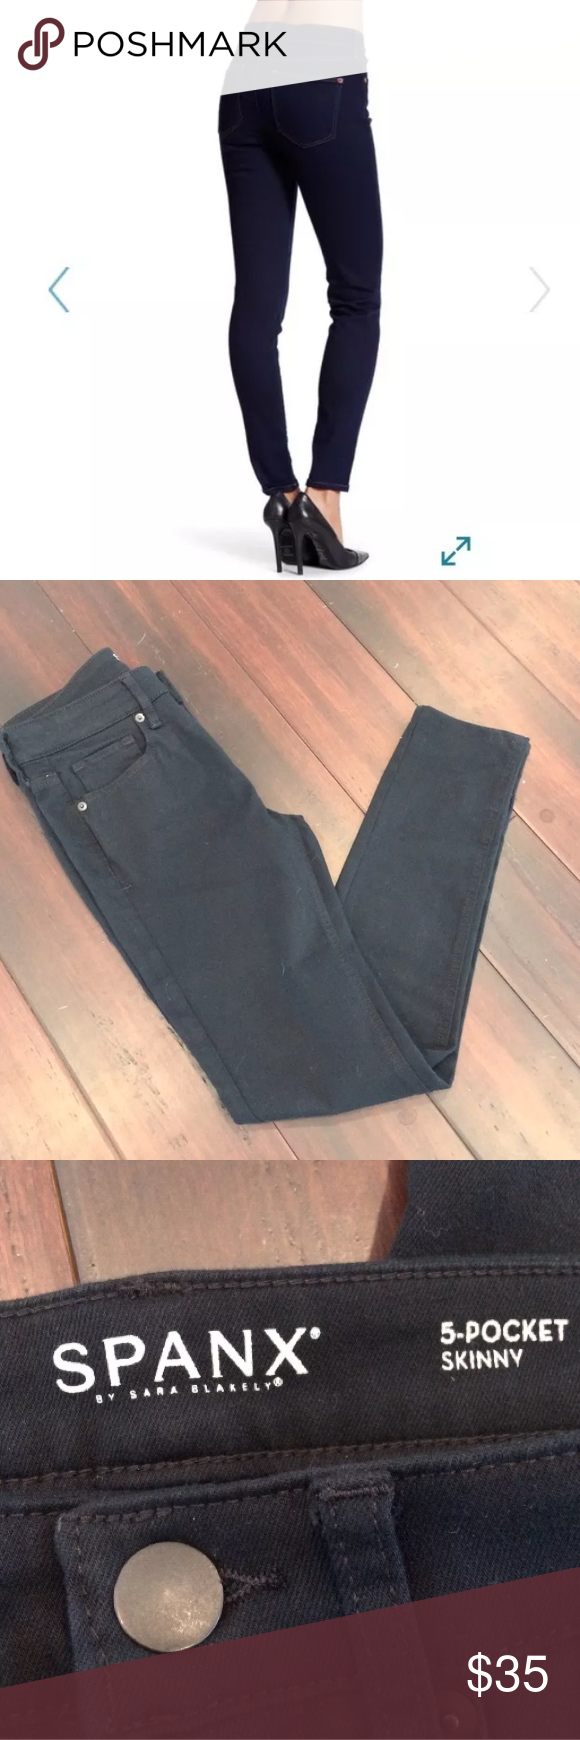 SPANX Sara Blakely 5 pocket Skinny Jeans Excellent condition, clean and smoke free home, never worn, no wears/stains/holes SPANX Pants Skinny